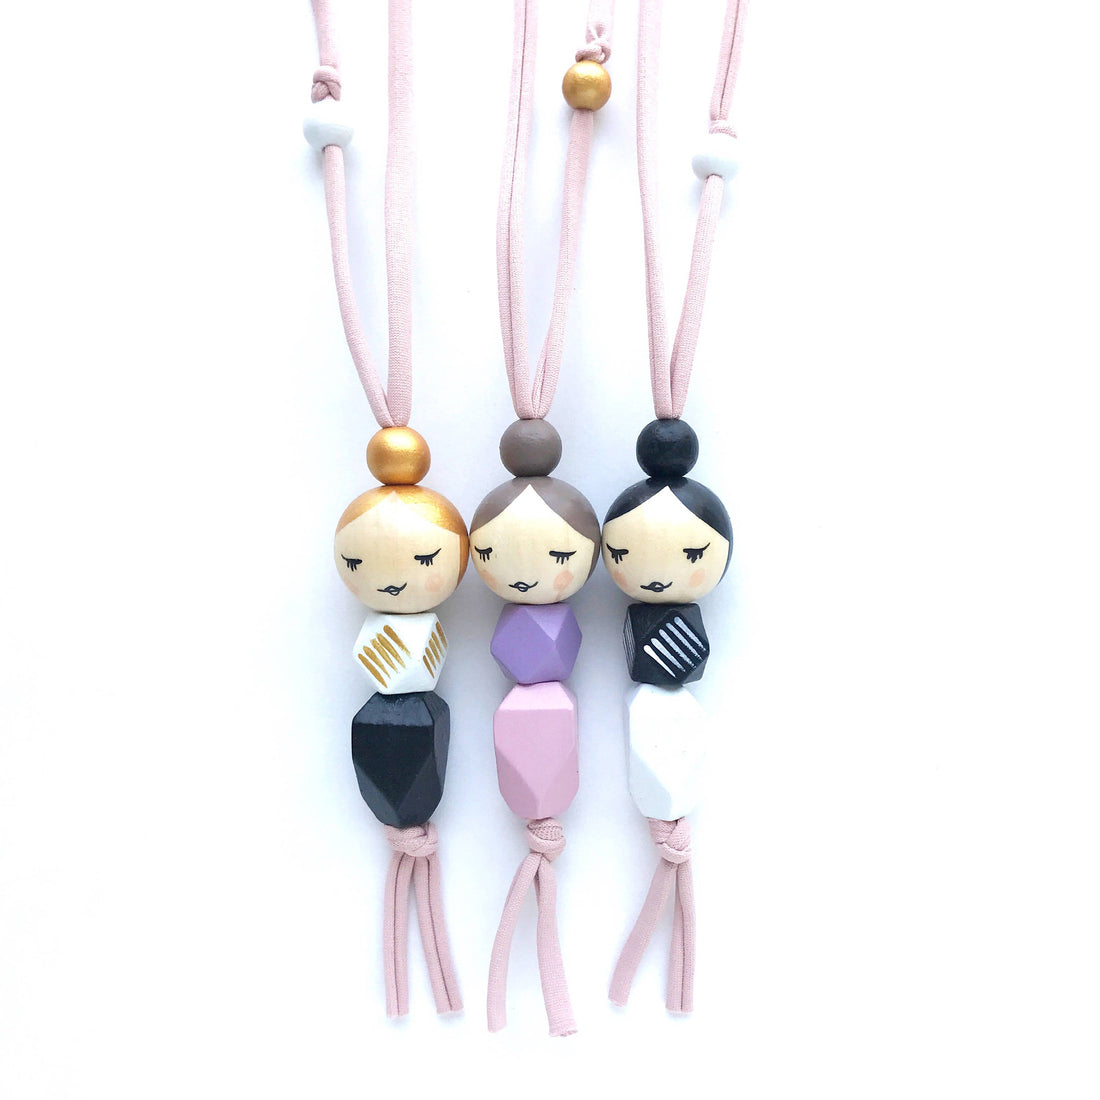 Sleepy Geo Momma Doll Necklace - The Makers